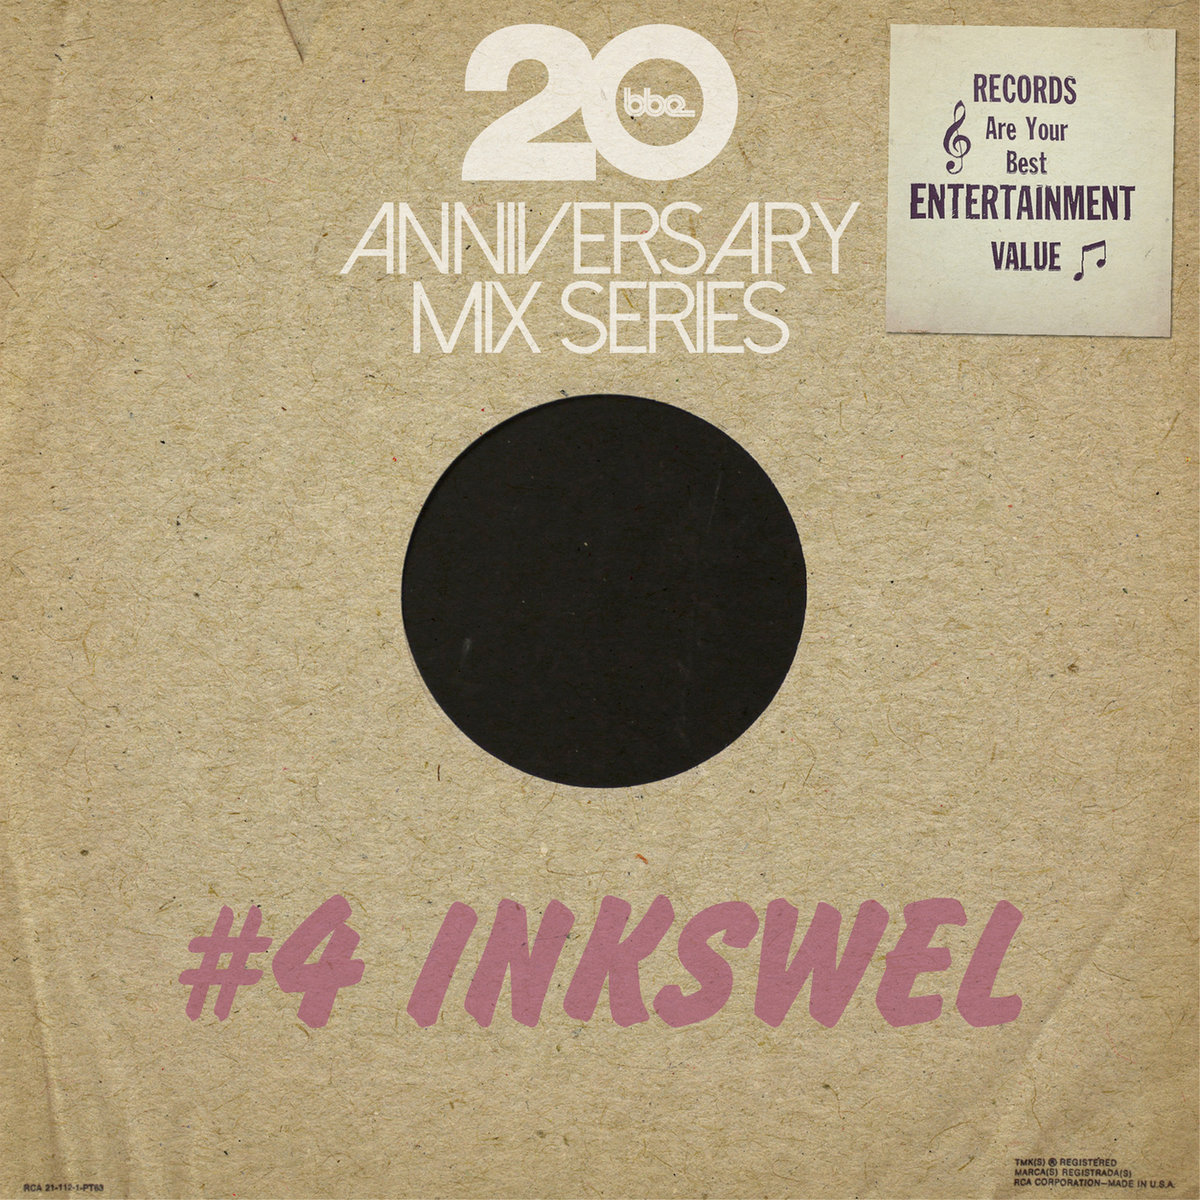 BBE20 Anniversary Mix Series # 4 by Inkswel